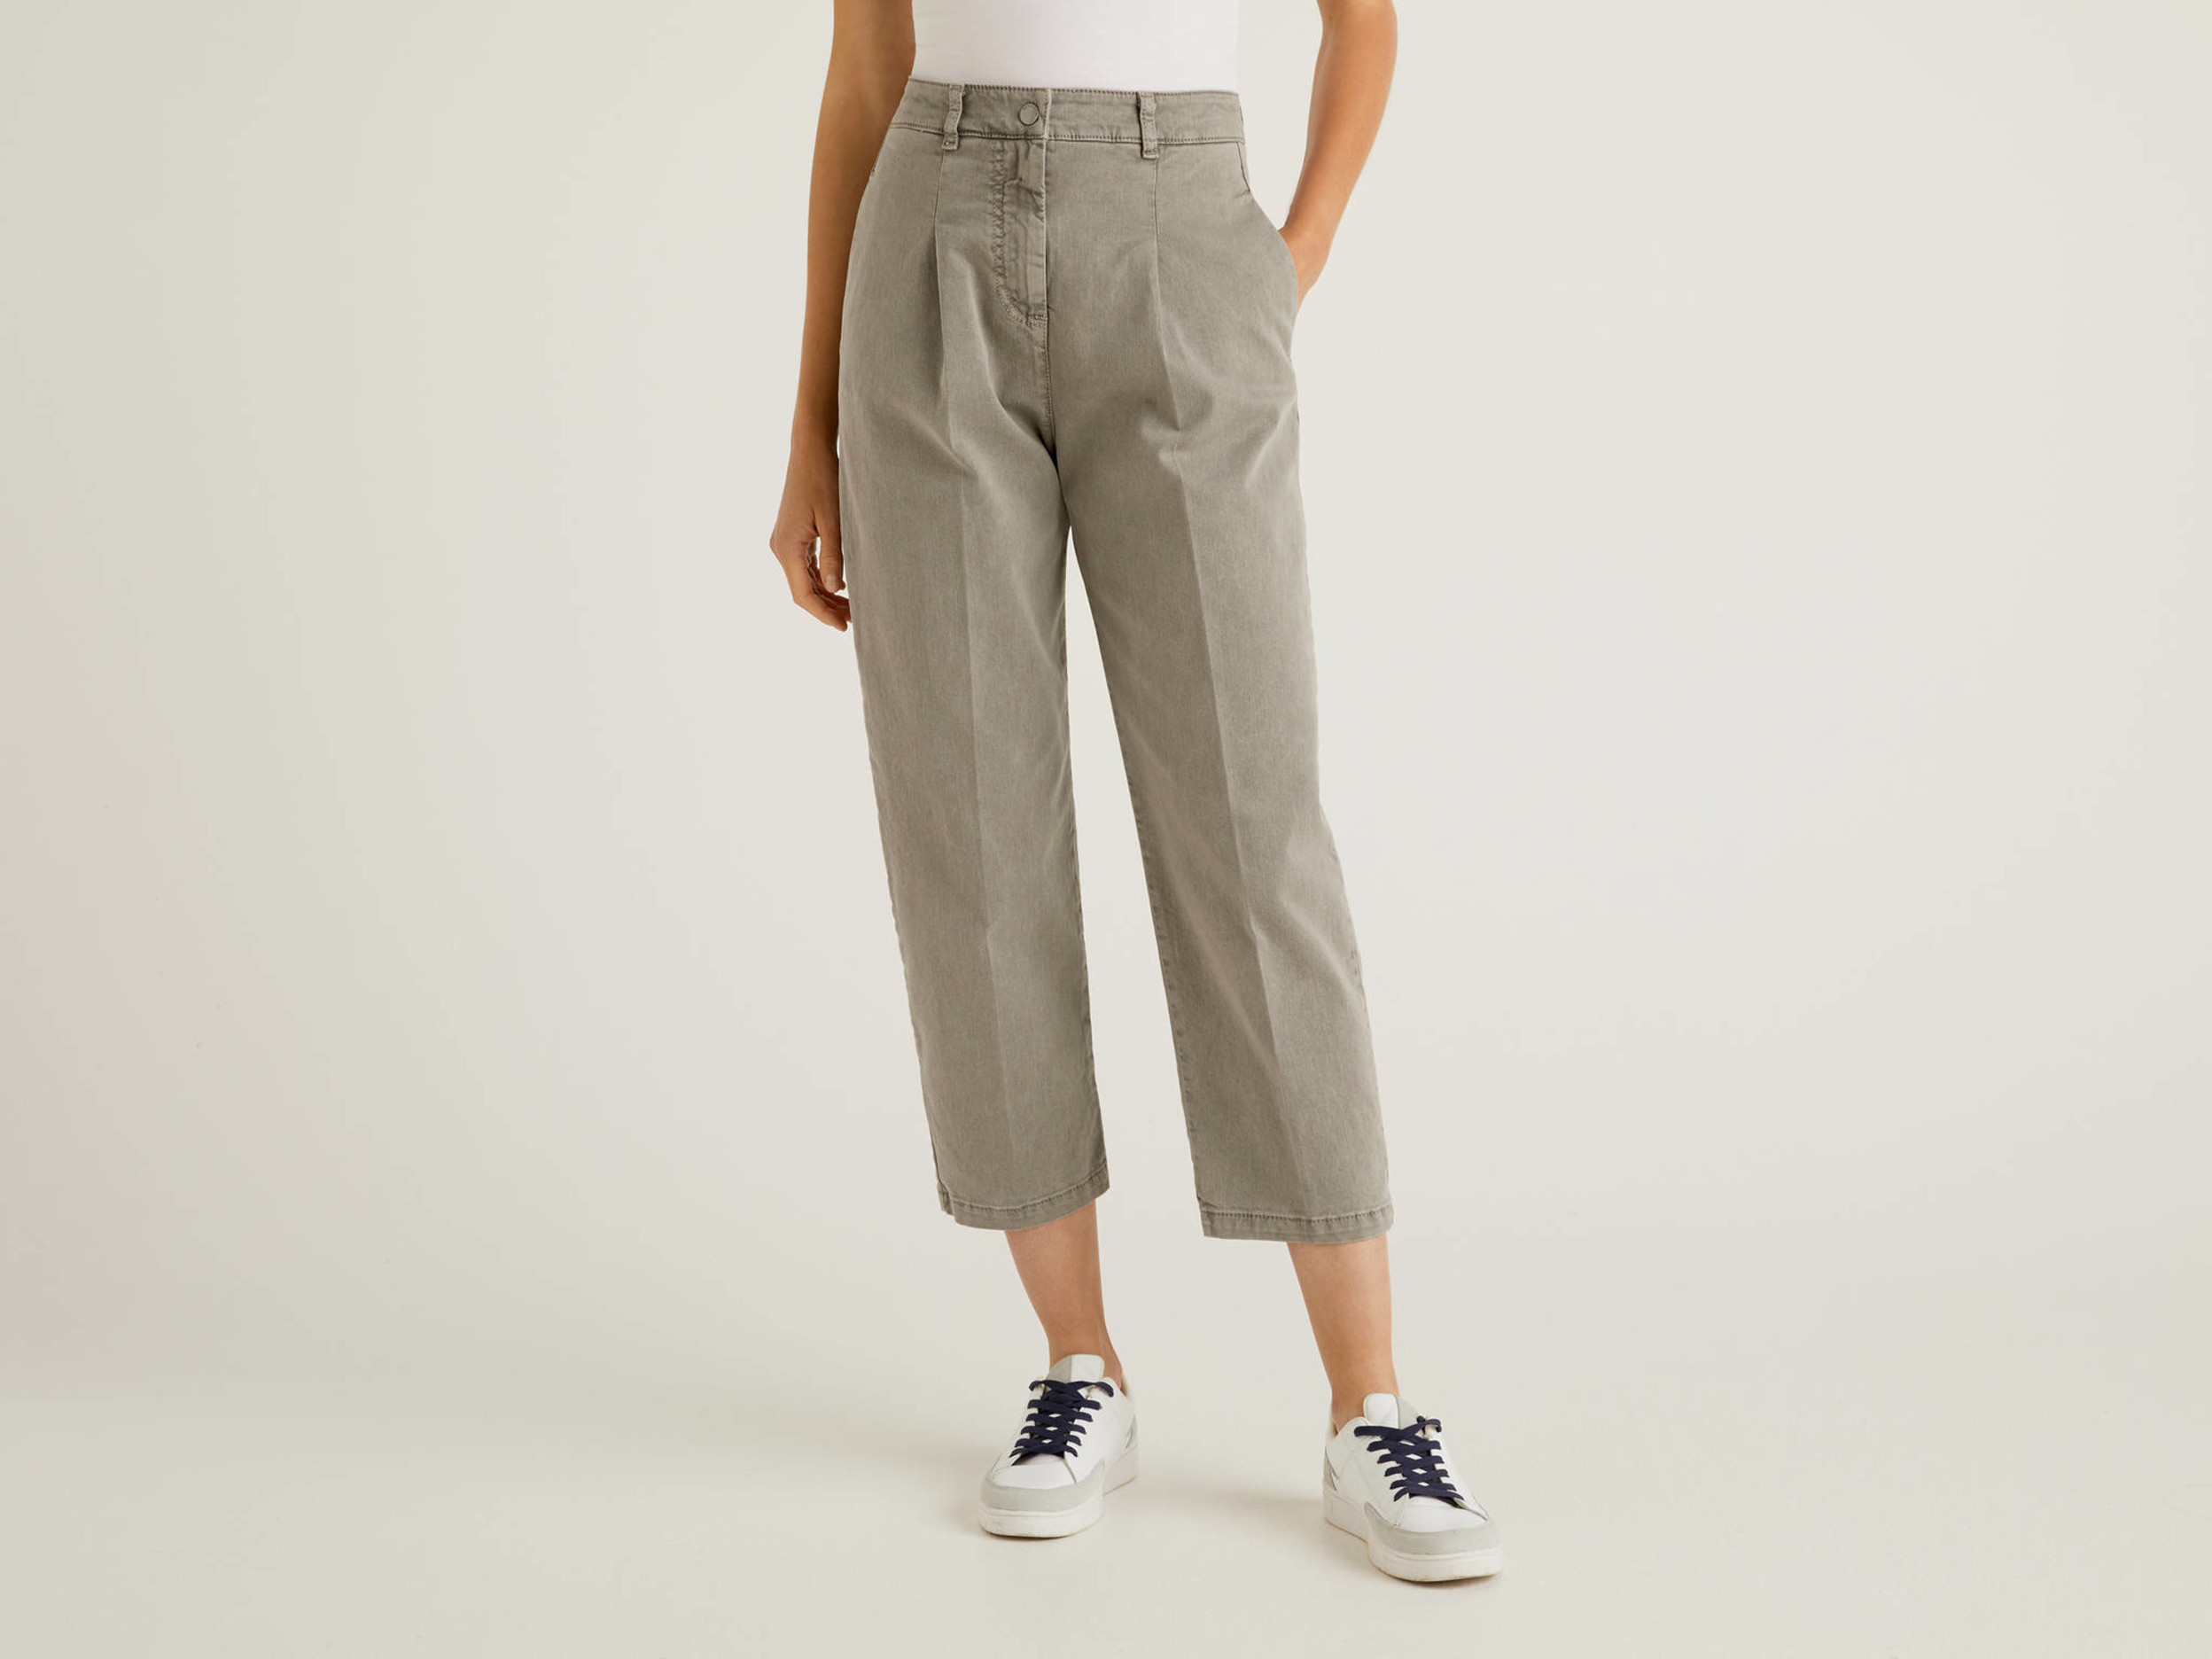 Benetton, Carrot Fit Trousers With Pleats, size 48, Gray, Women